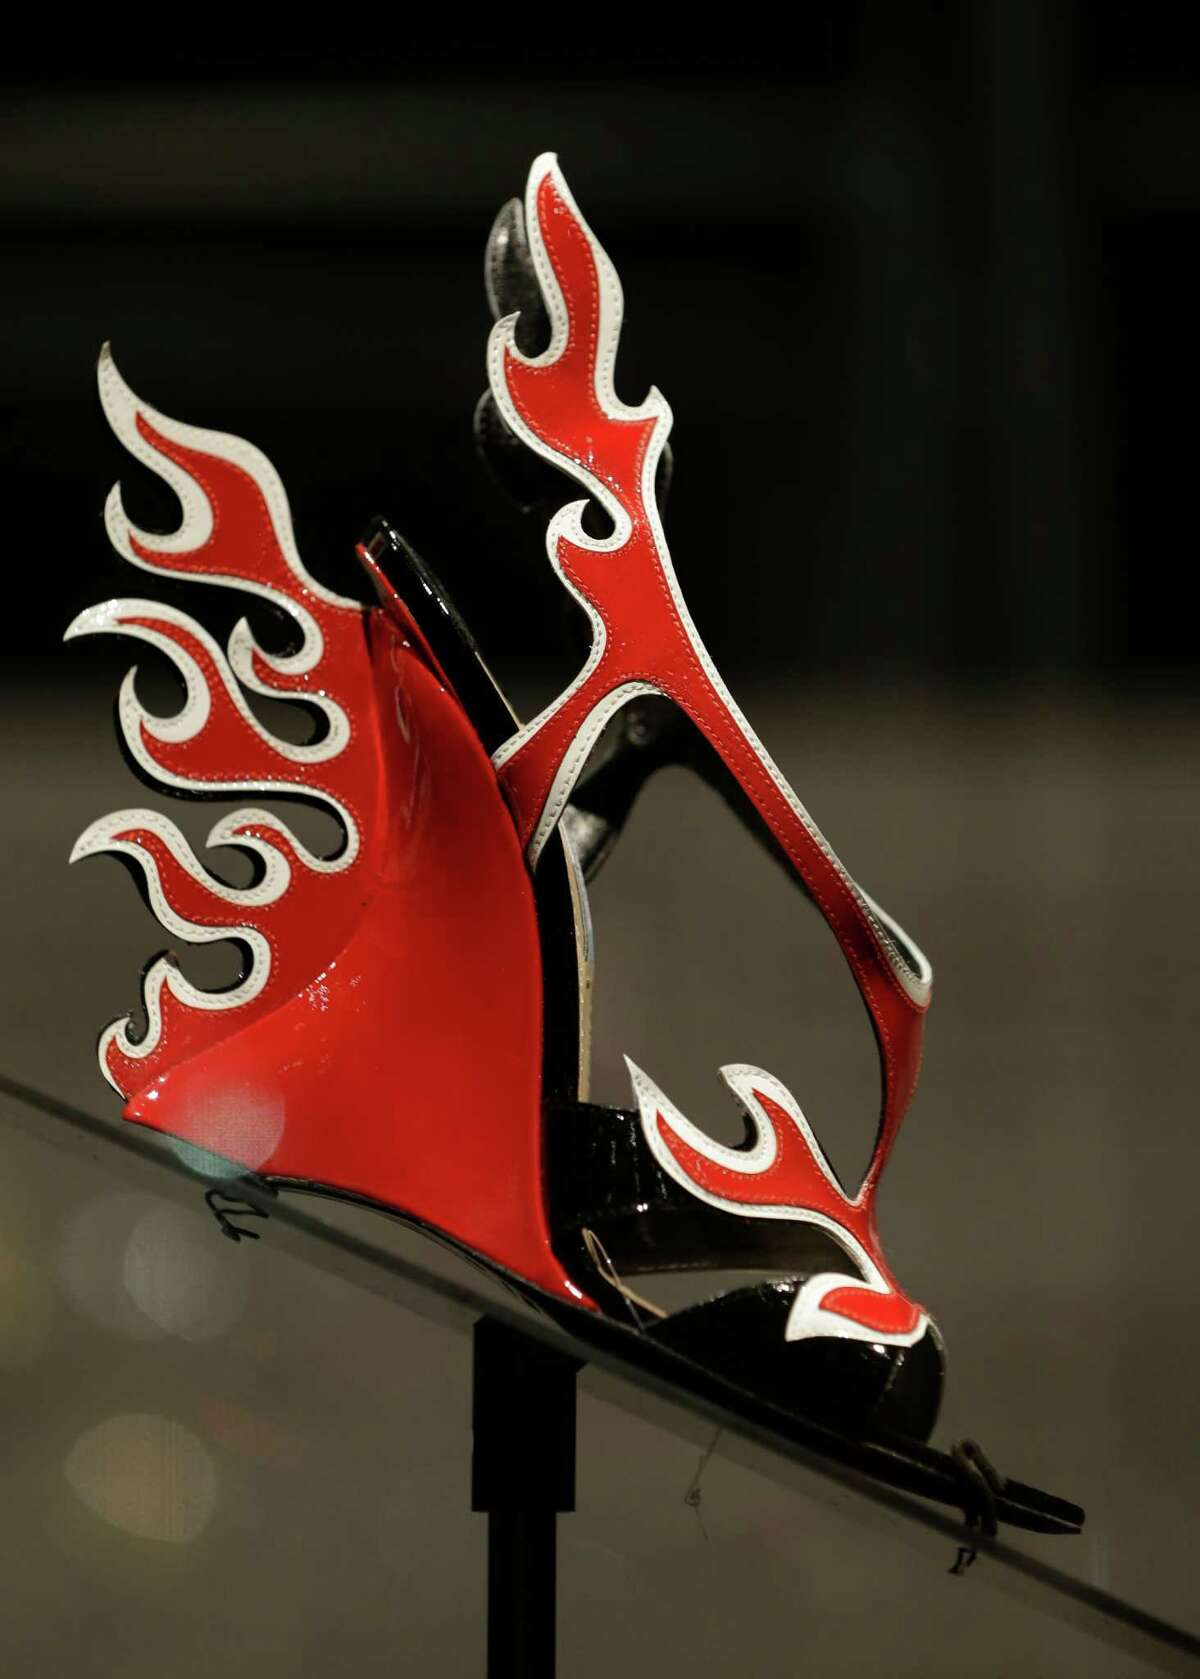 This Feb. 11, 2013 photo shows a red and white patent leather flame Prada sandal displayed at the